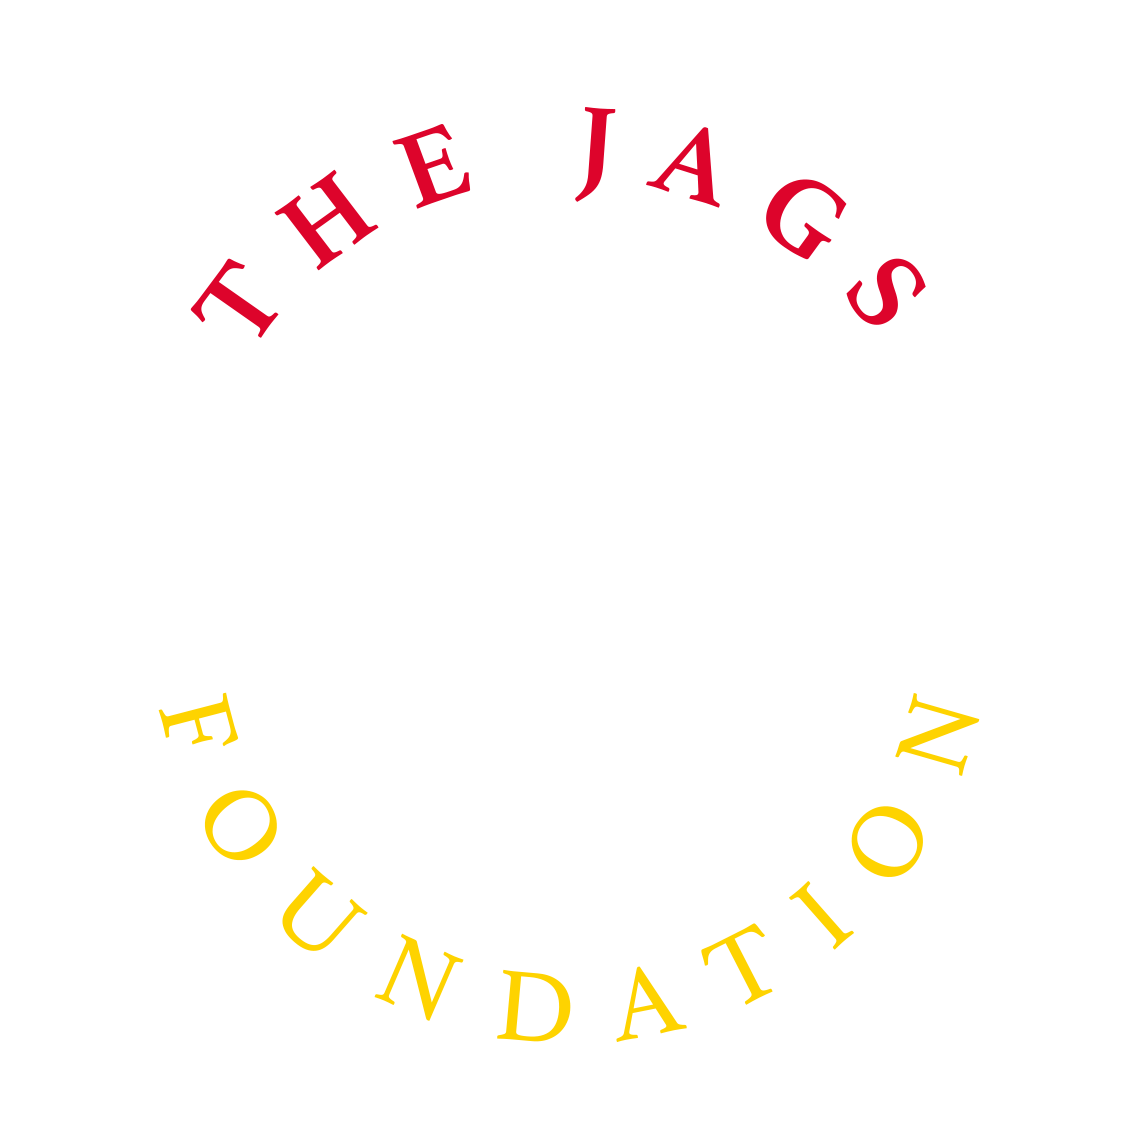 The Jags Foundation